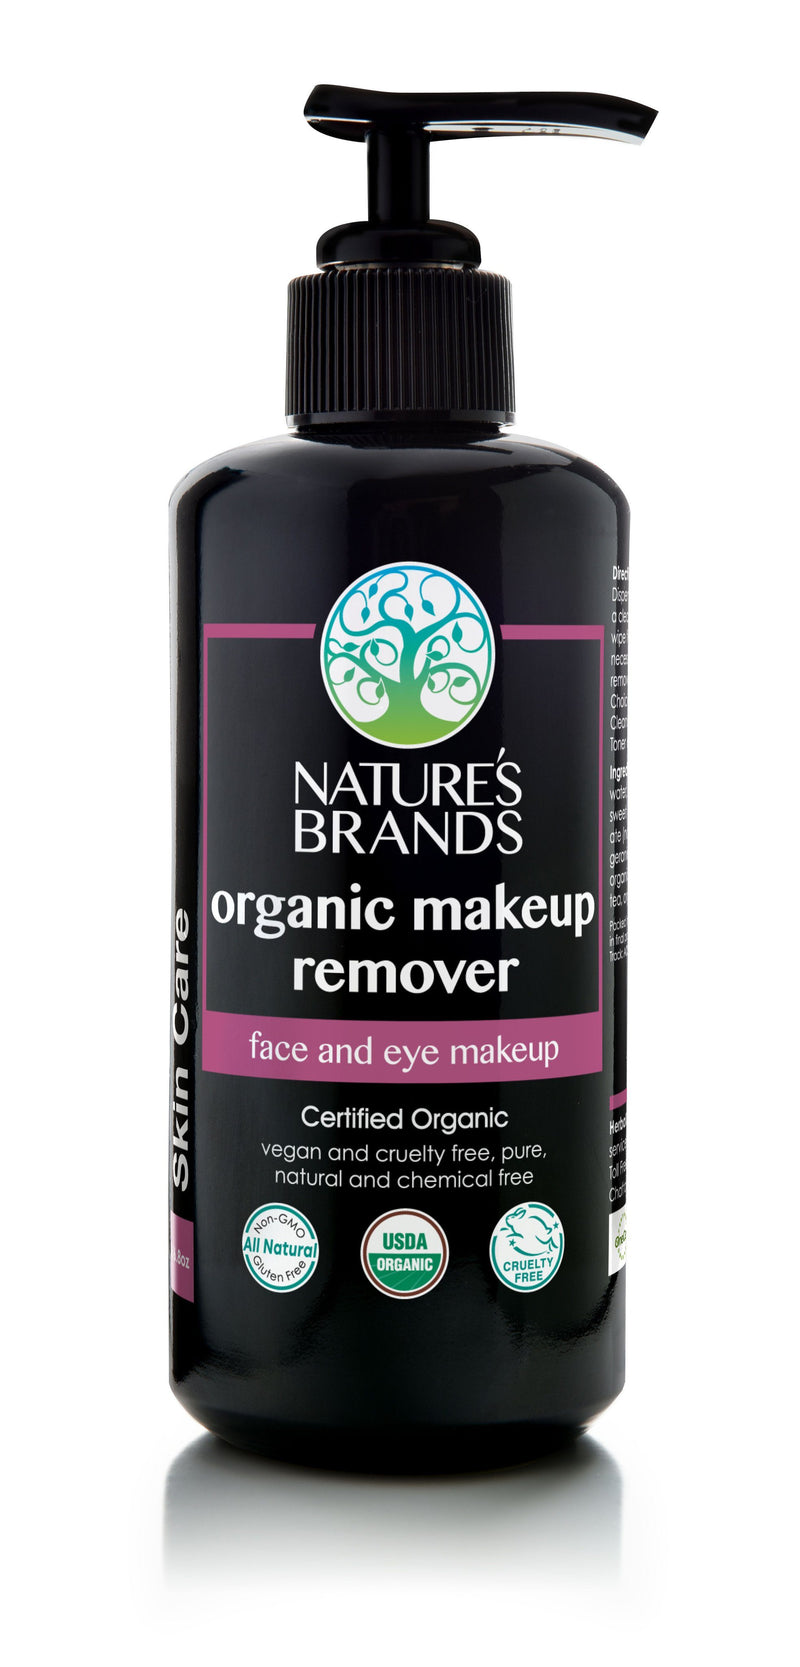 Herbal Choice Mari Organic Makeup Remover - Herbal Choice Mari Organic Makeup Remover - 6.8floz